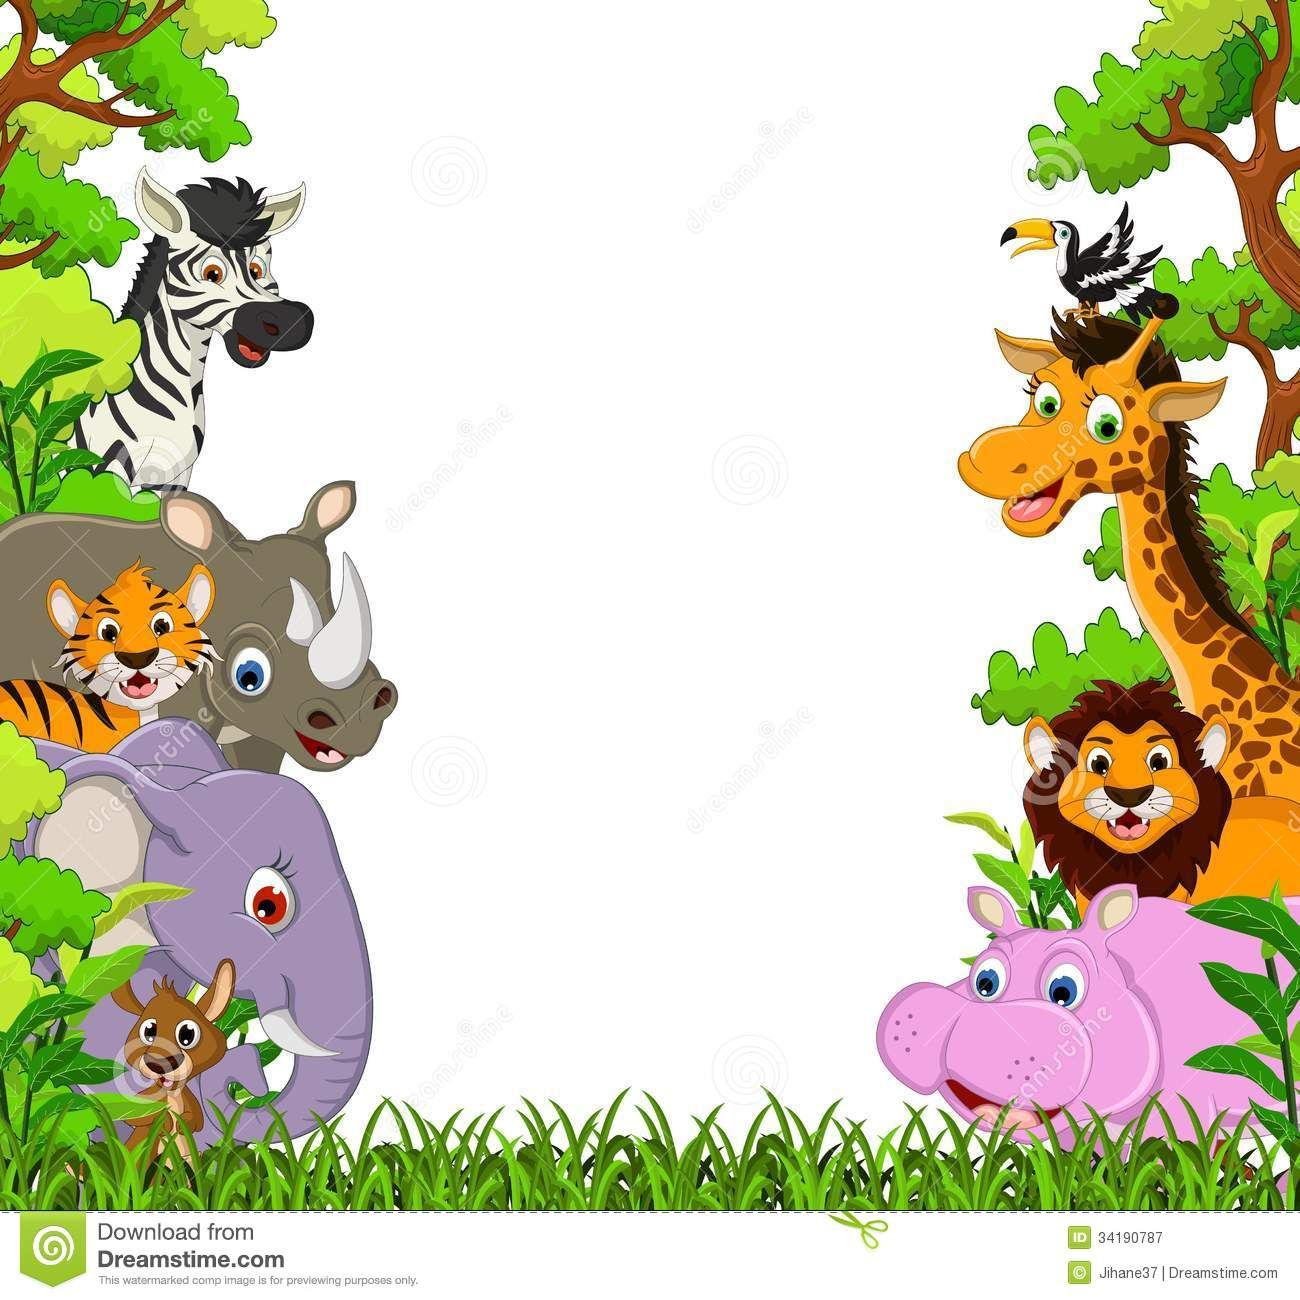 Jungle clipart. Image for free animal